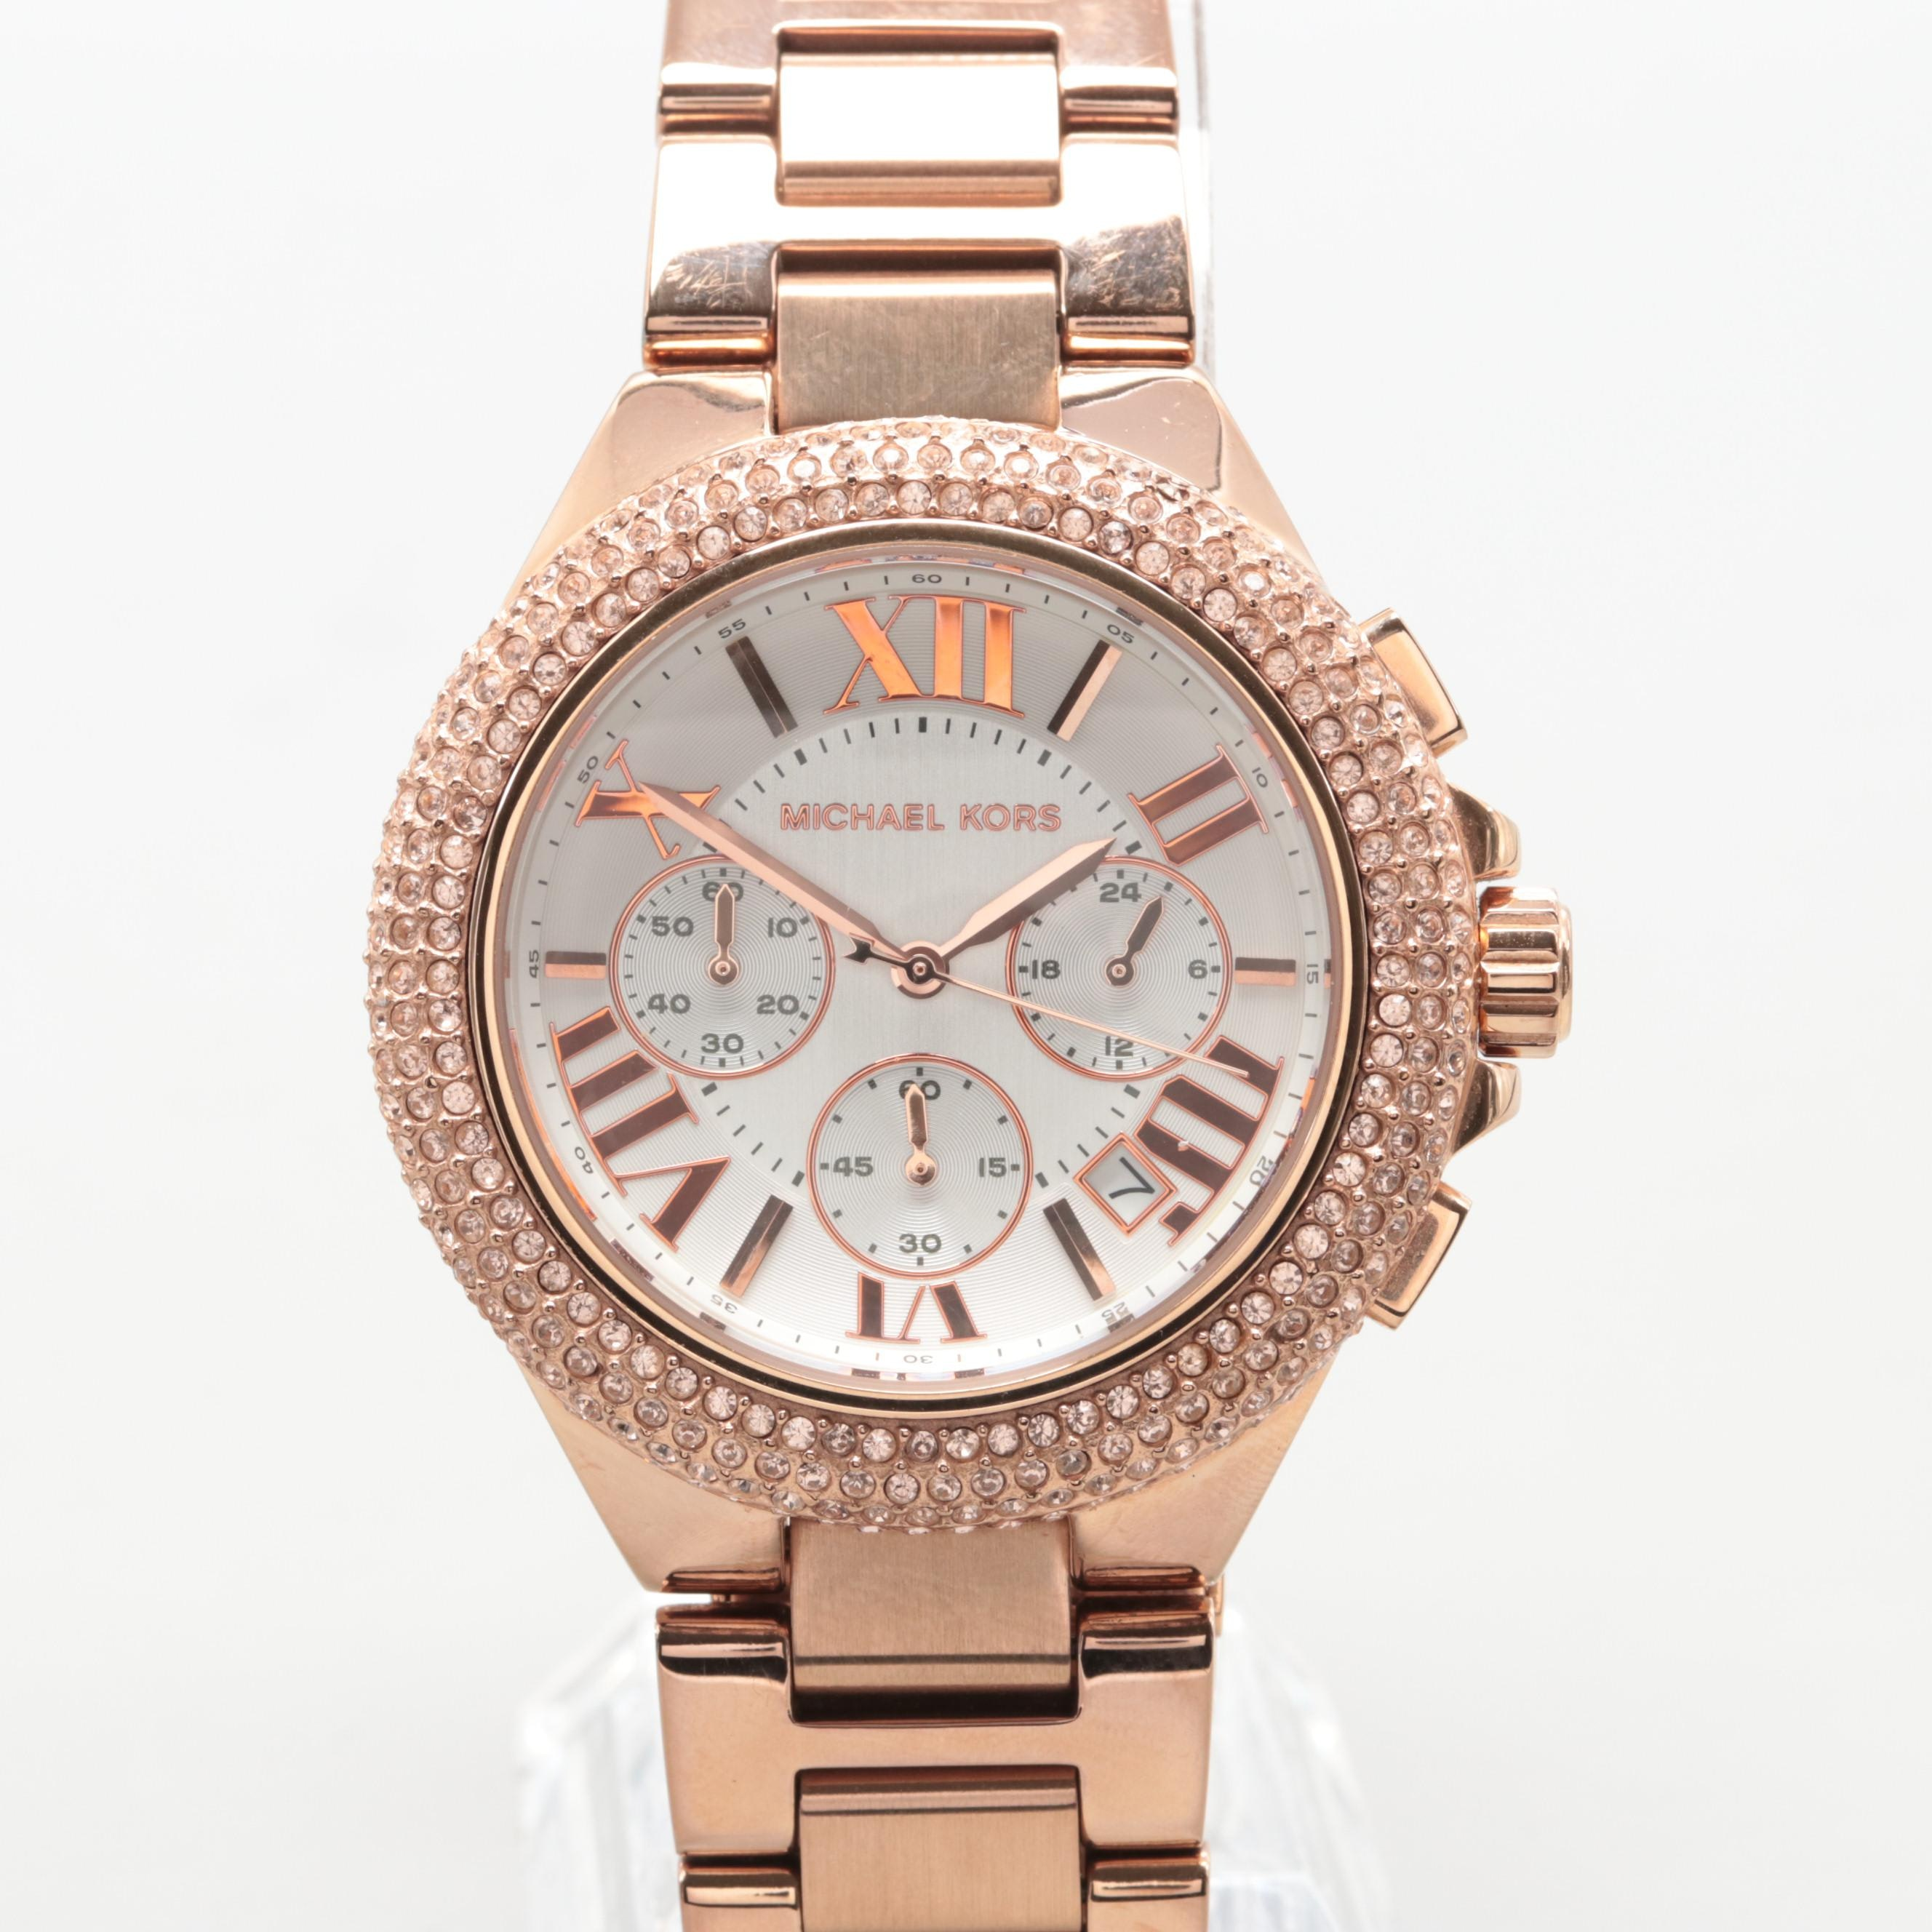 Michael Kors Model MK-5636 Rose Gold Tone Chronograph Wristwatch